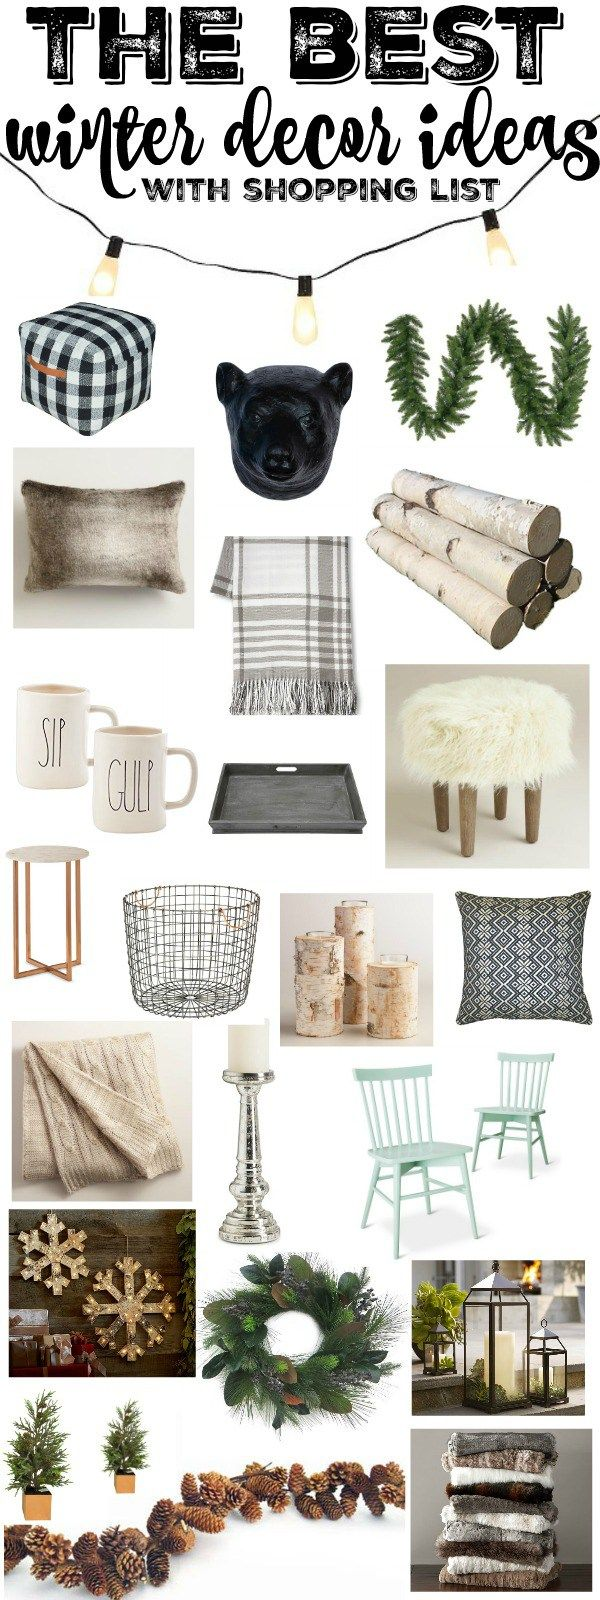 The Best Winter Decor Ideas With A Complete Shopping List So You Can Shop All Of